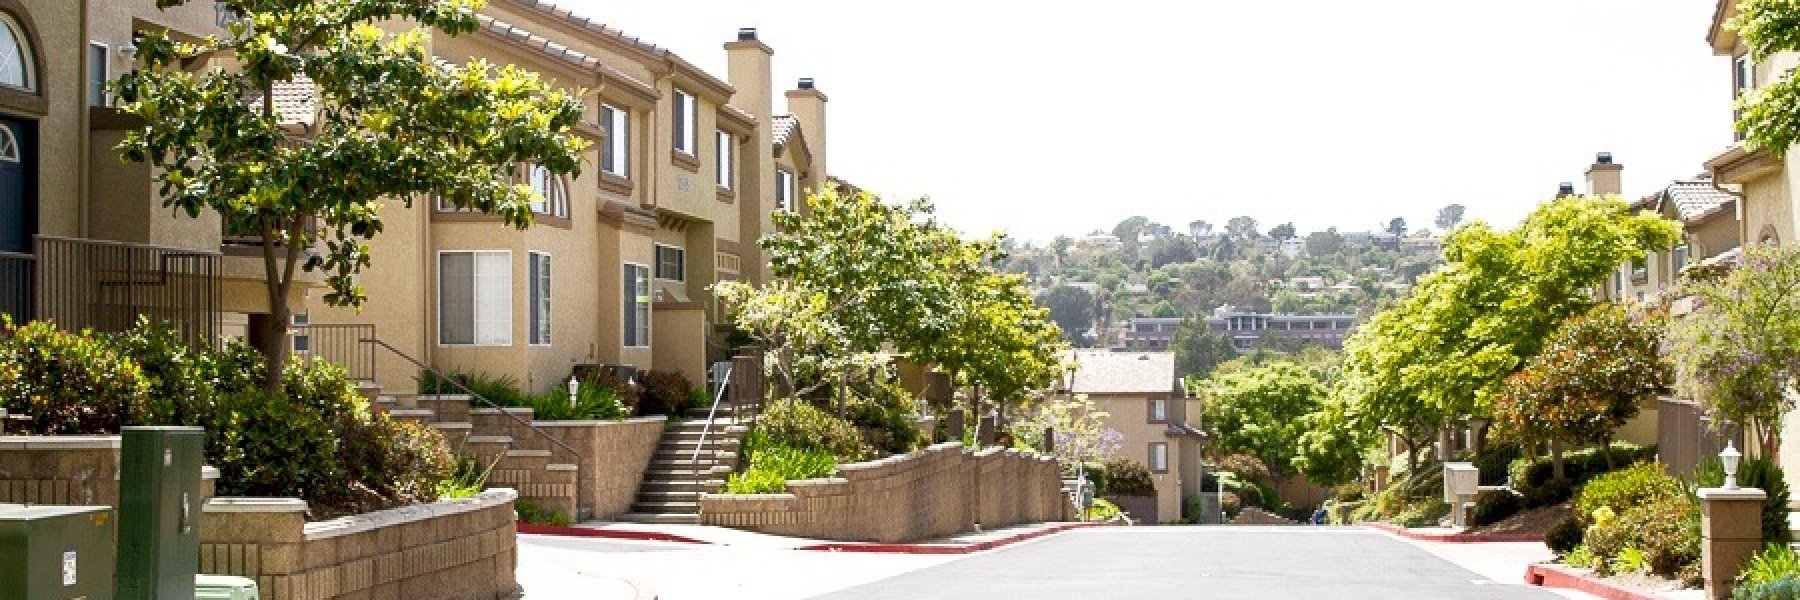 Crest at Del Mar is a community of attached homes in San Diego California